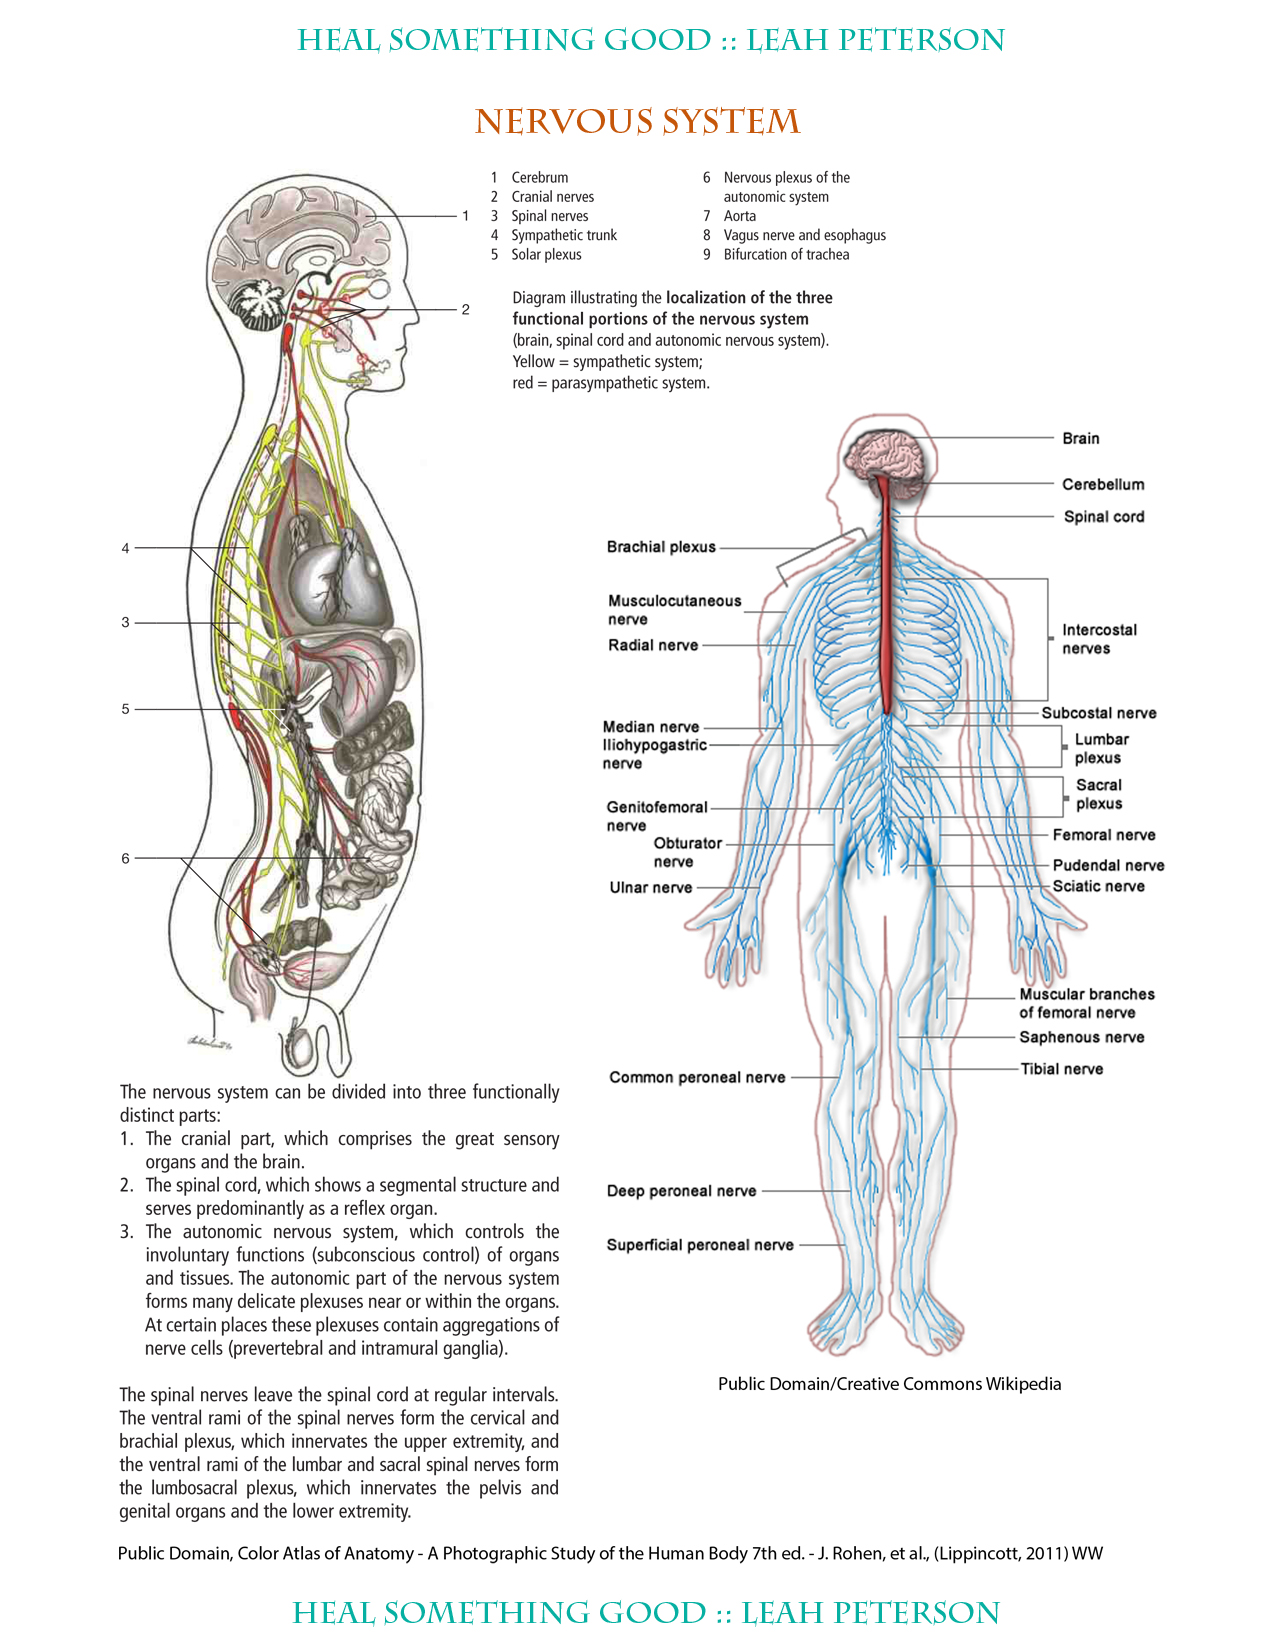 Chart Nervous System Heal Something Good